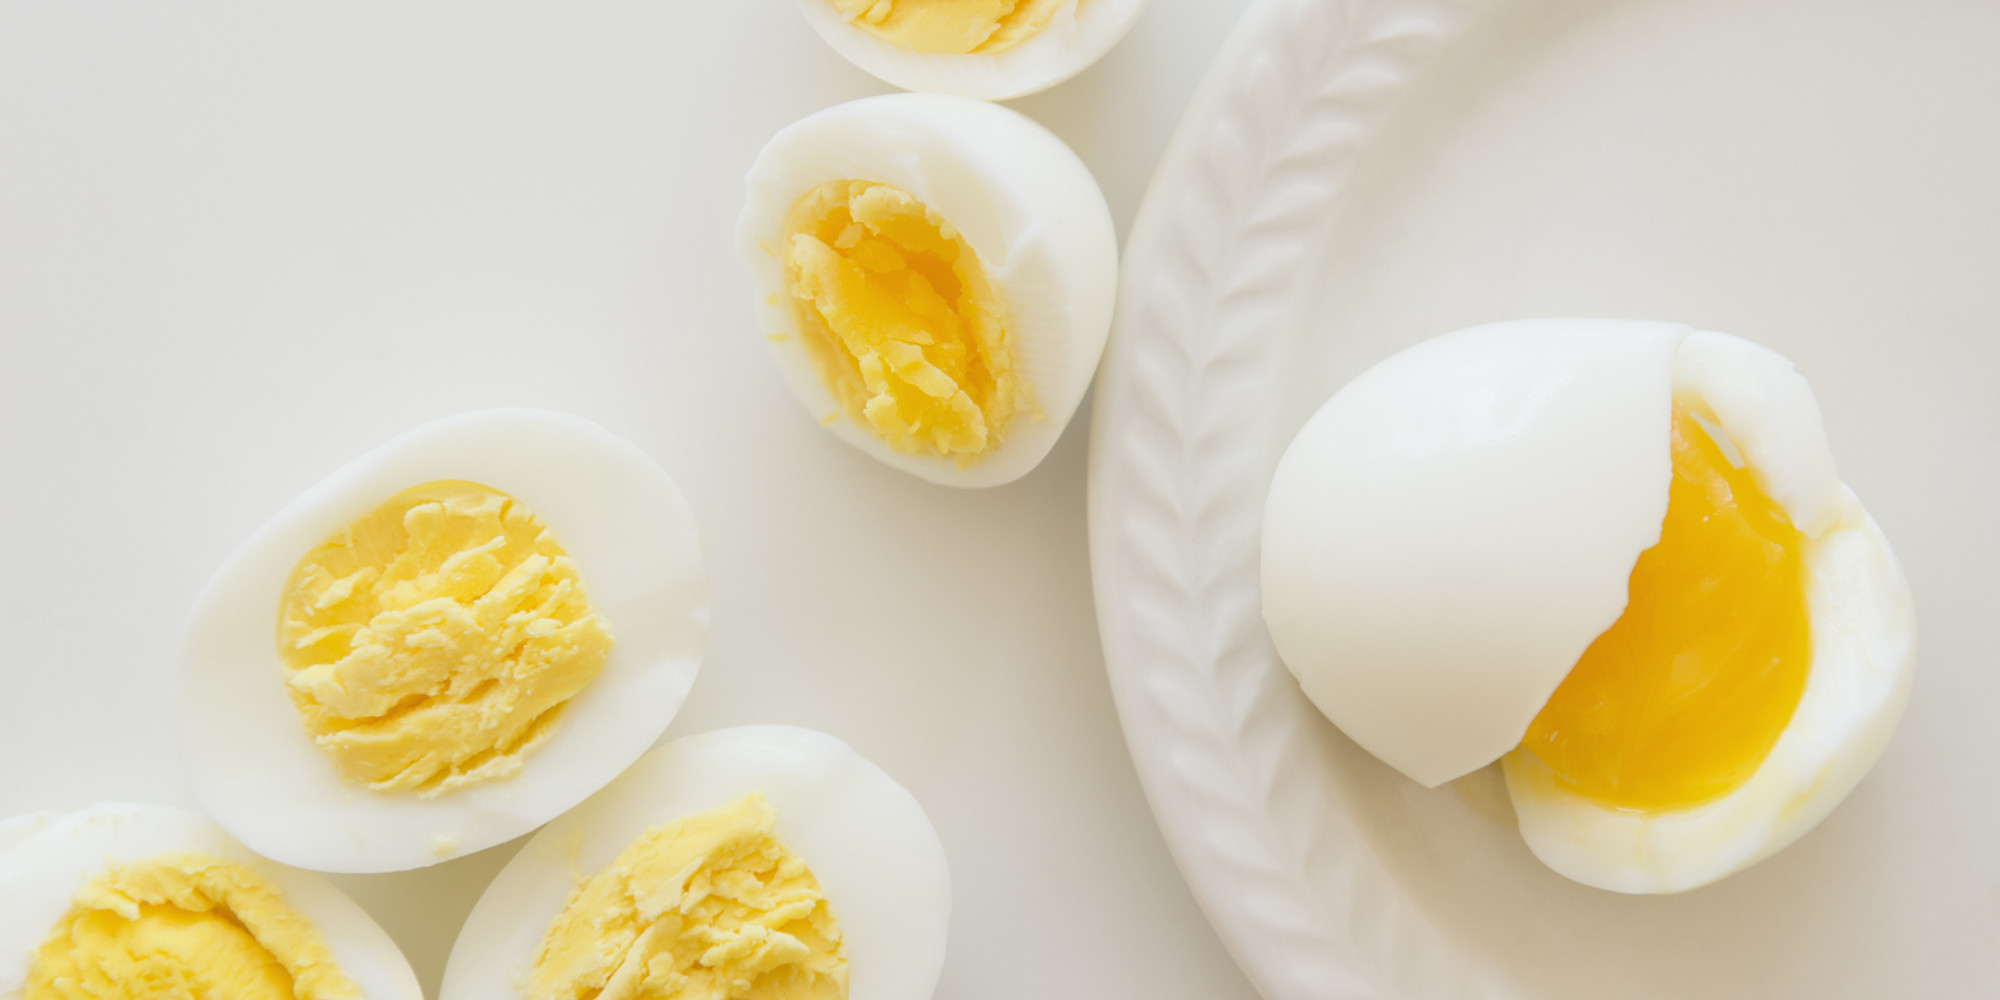 The 5-Second Trick For Making Hard-Boiled Eggs Easy To Peel | The ...